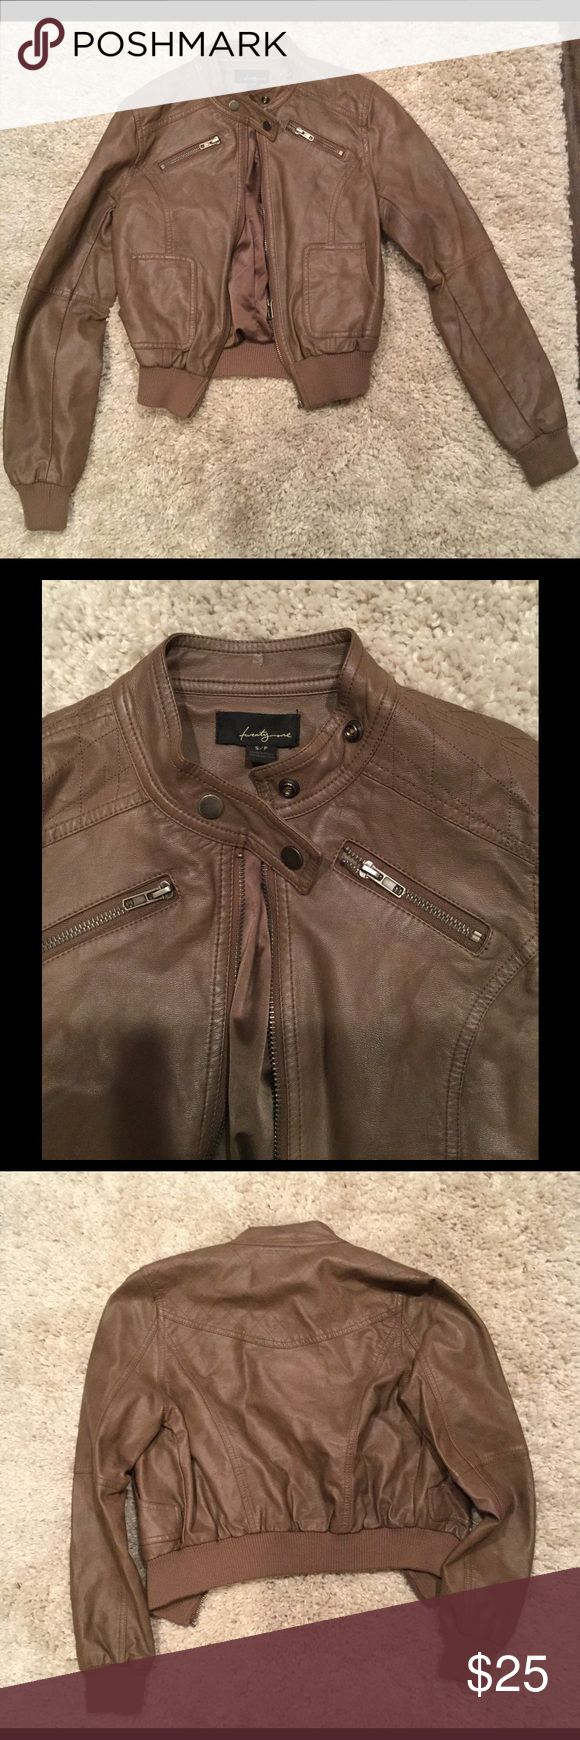 Tan Leather Jacket Forever 21 faux leather jacket. Great condition, super cute it just doesn't fit me anymore! Forever 21 Jackets & Coats